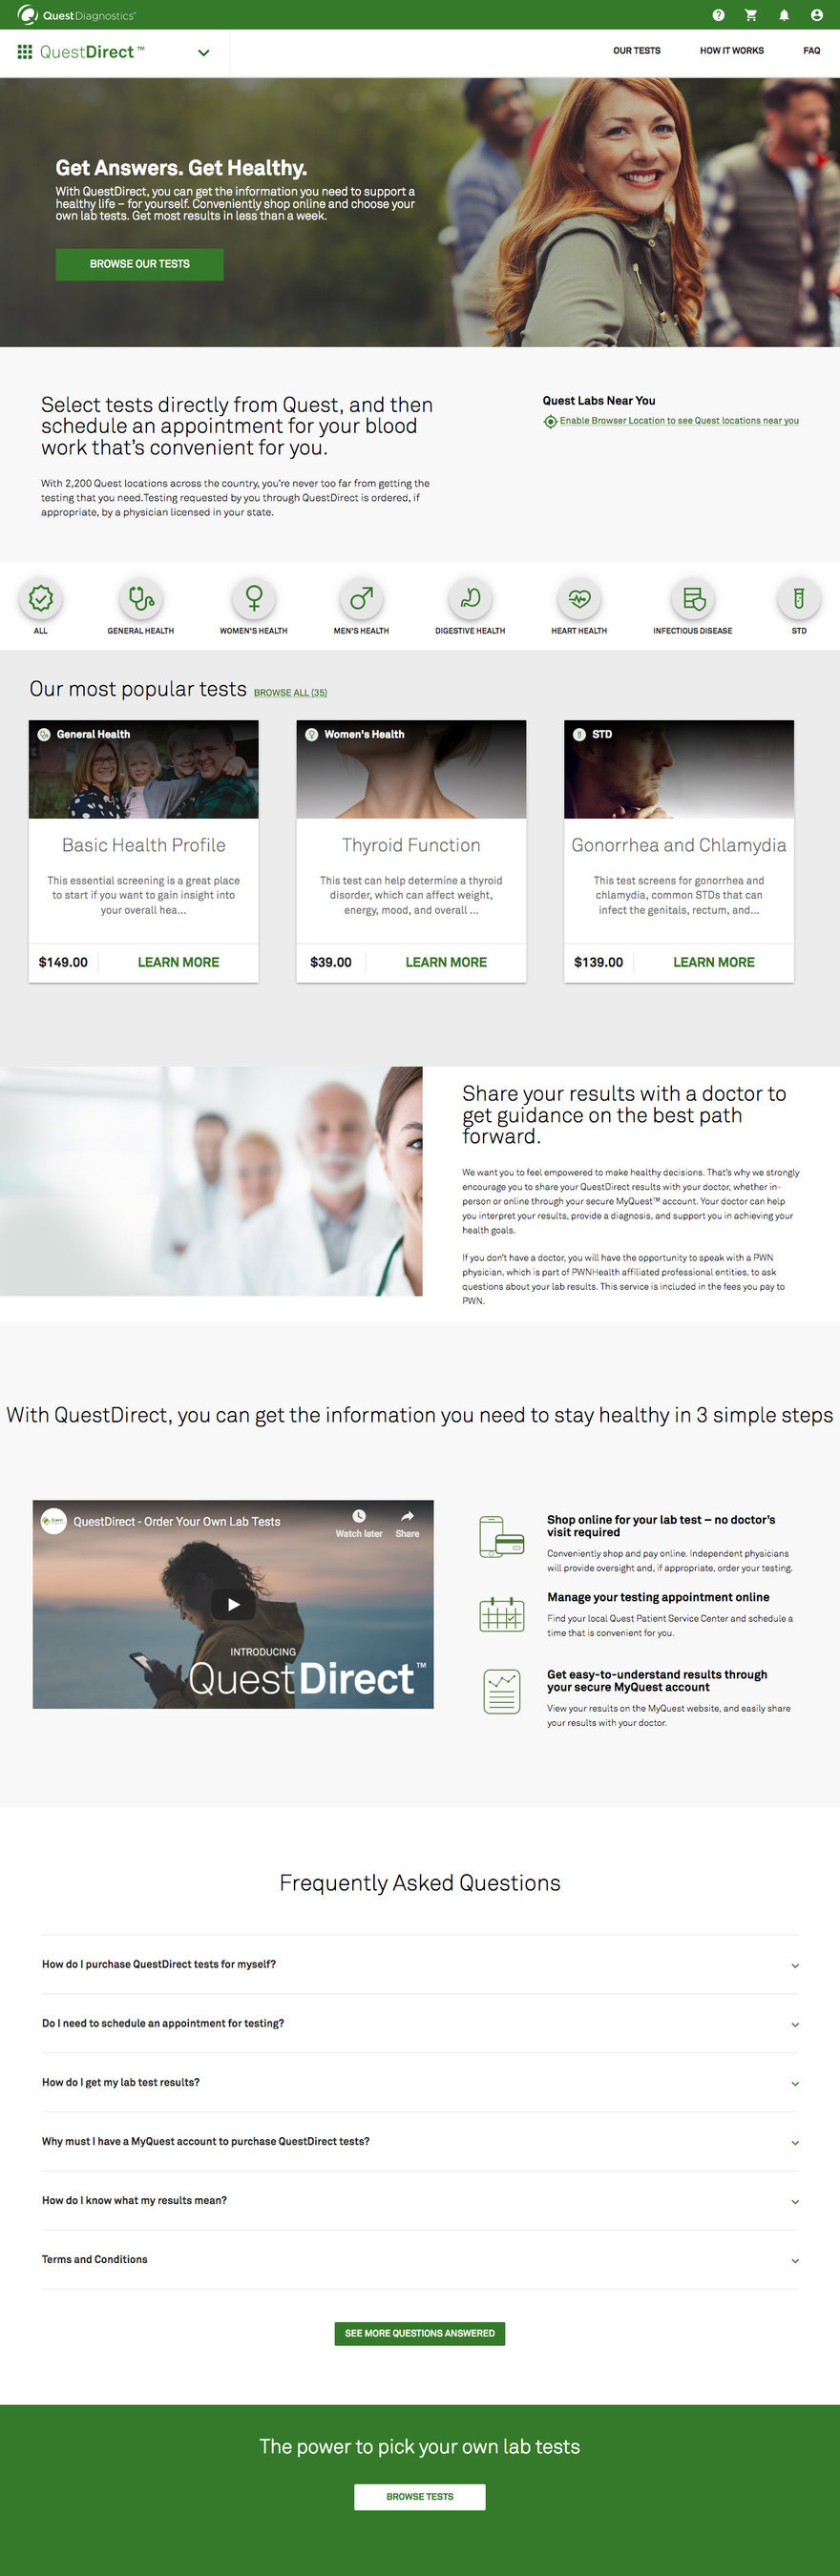 QuestDirect Home Page